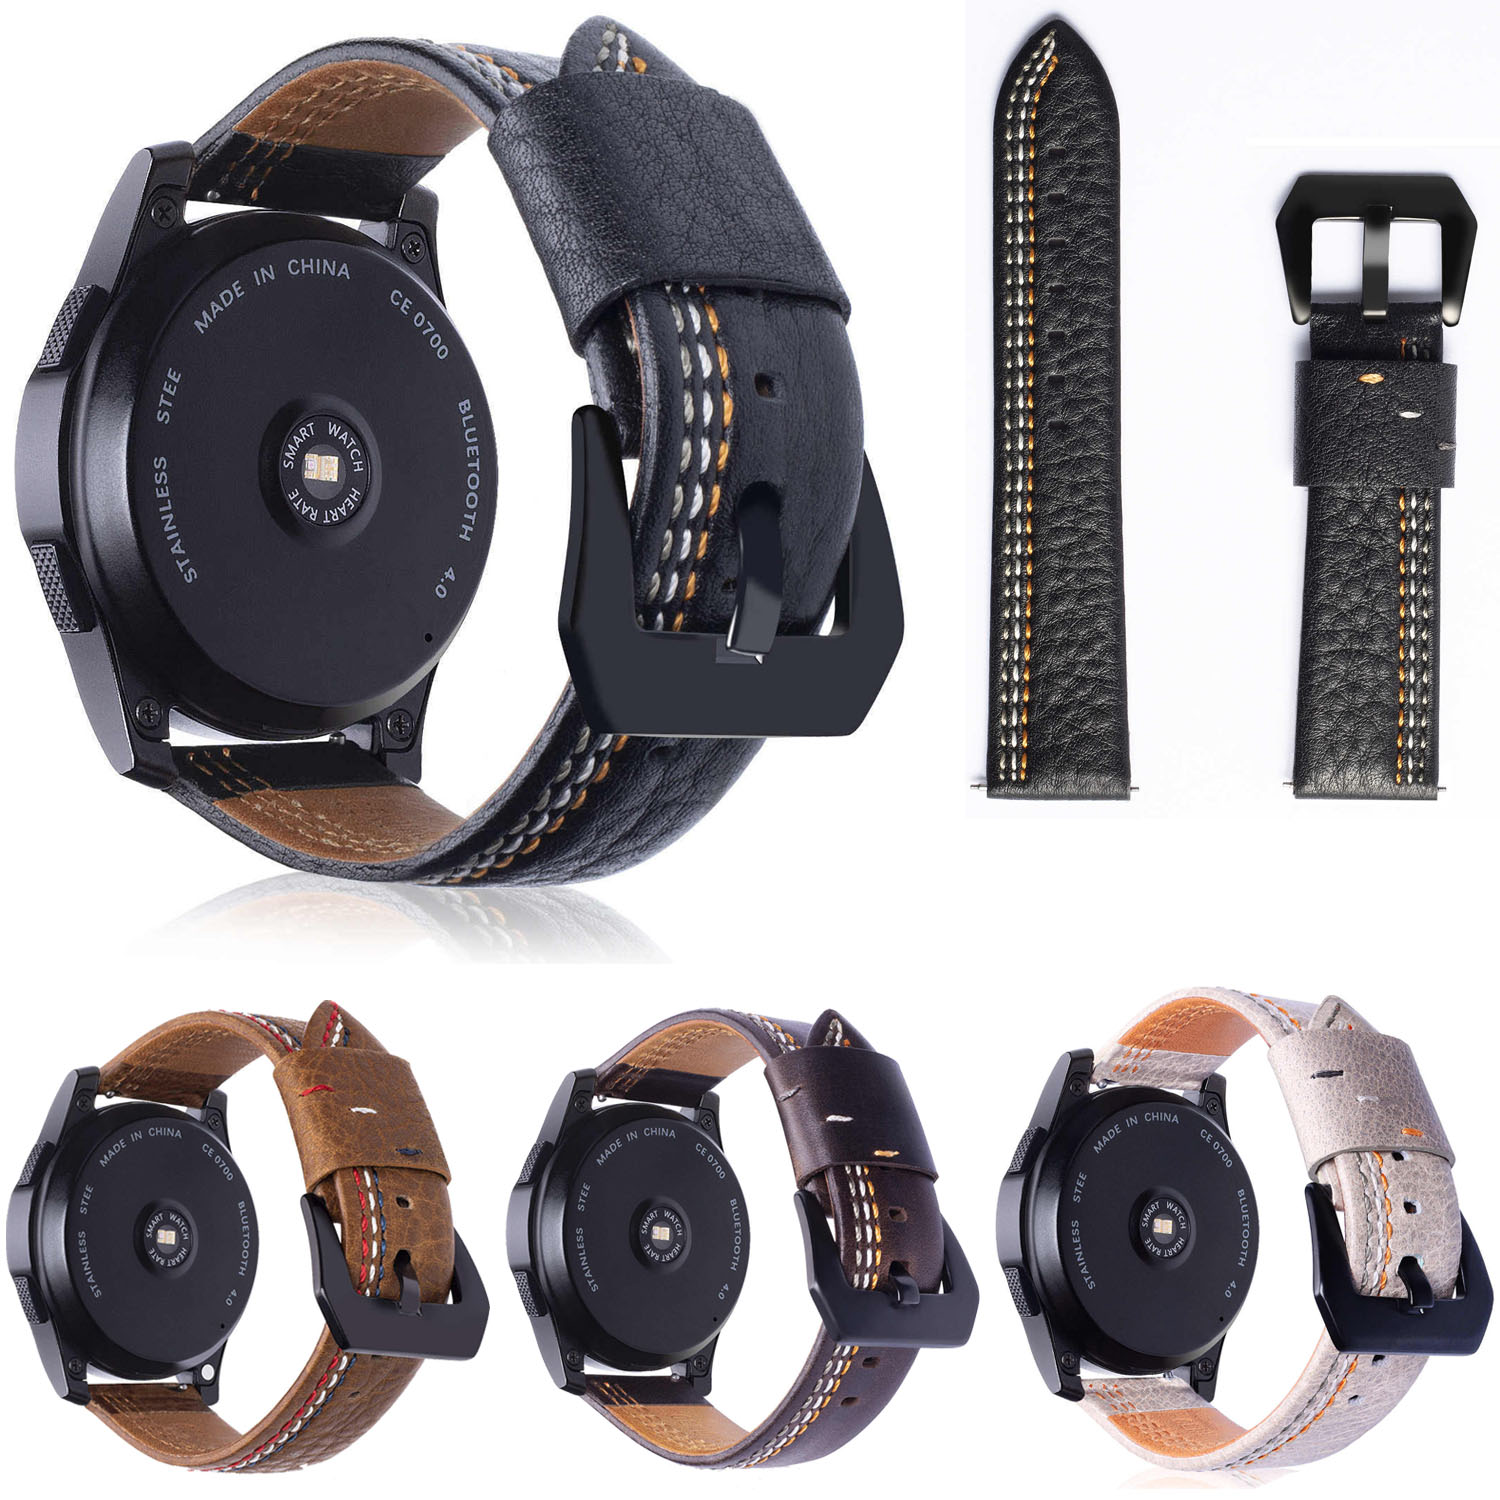 For Samsung Gear S3 Classic Genuine Leather Strap Replacement Buckle Strap Wrist Band for Samsung Gear S3 Frontier 22mm silicone sport watchband for gear s3 classic frontier 22mm strap for samsung galaxy watch 46mm band replacement strap bracelet